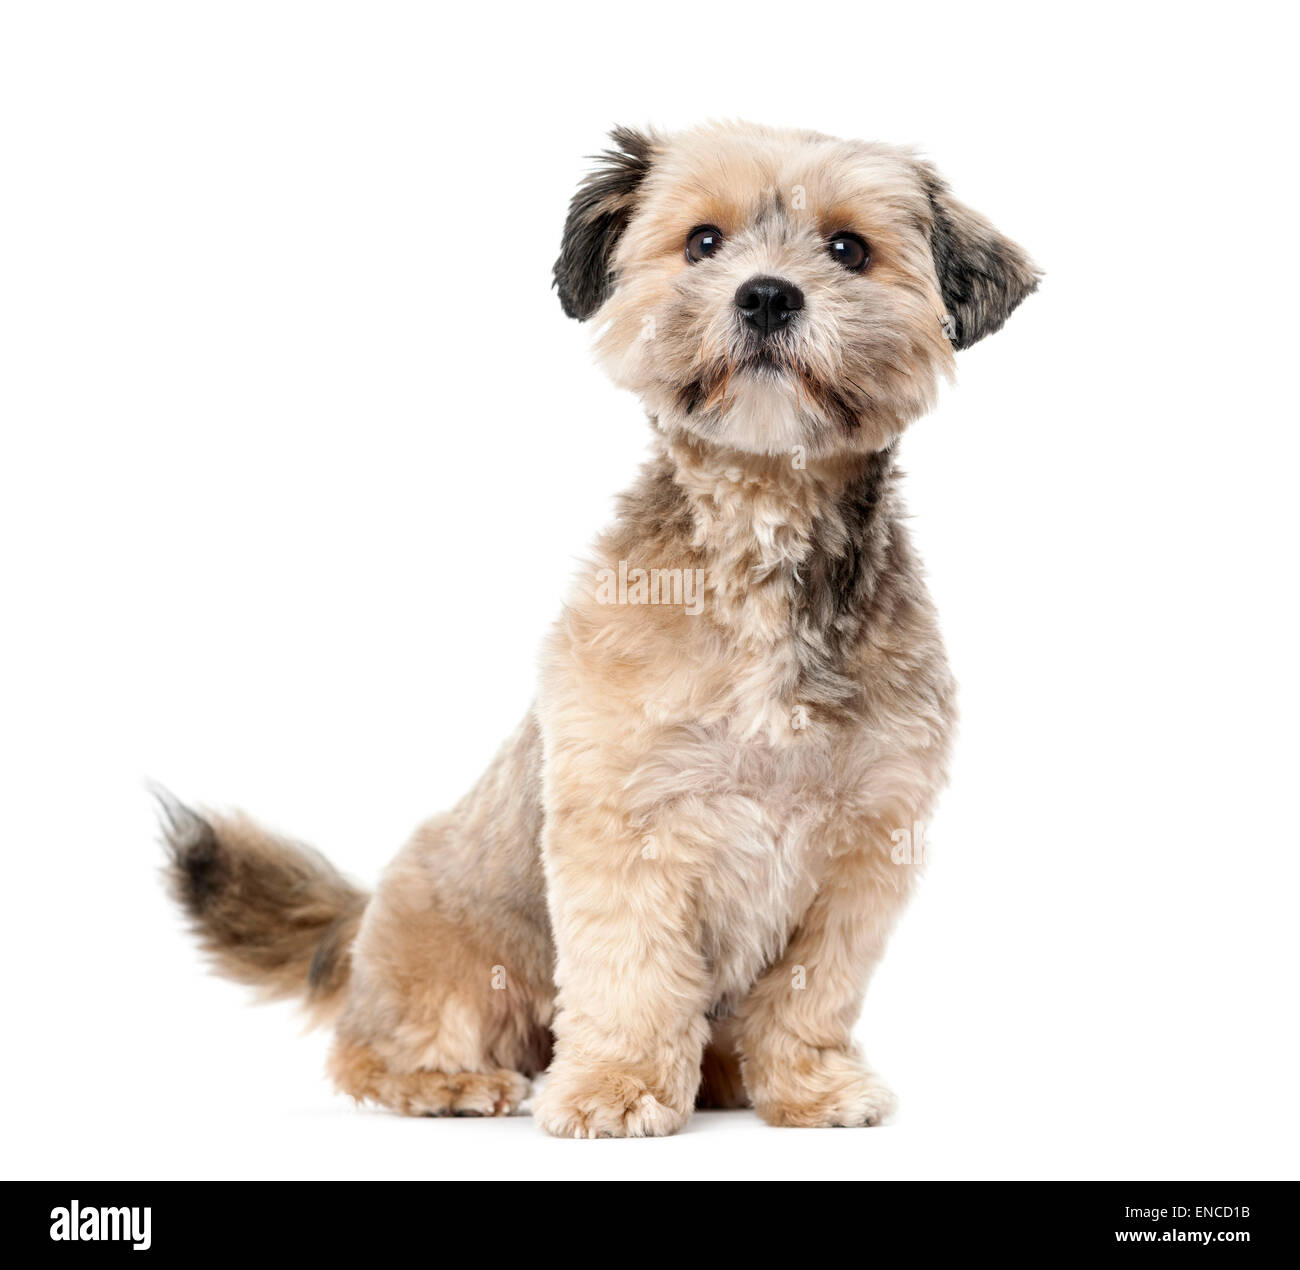 Crossbreed (1 year old) in front of a white background - Stock Image